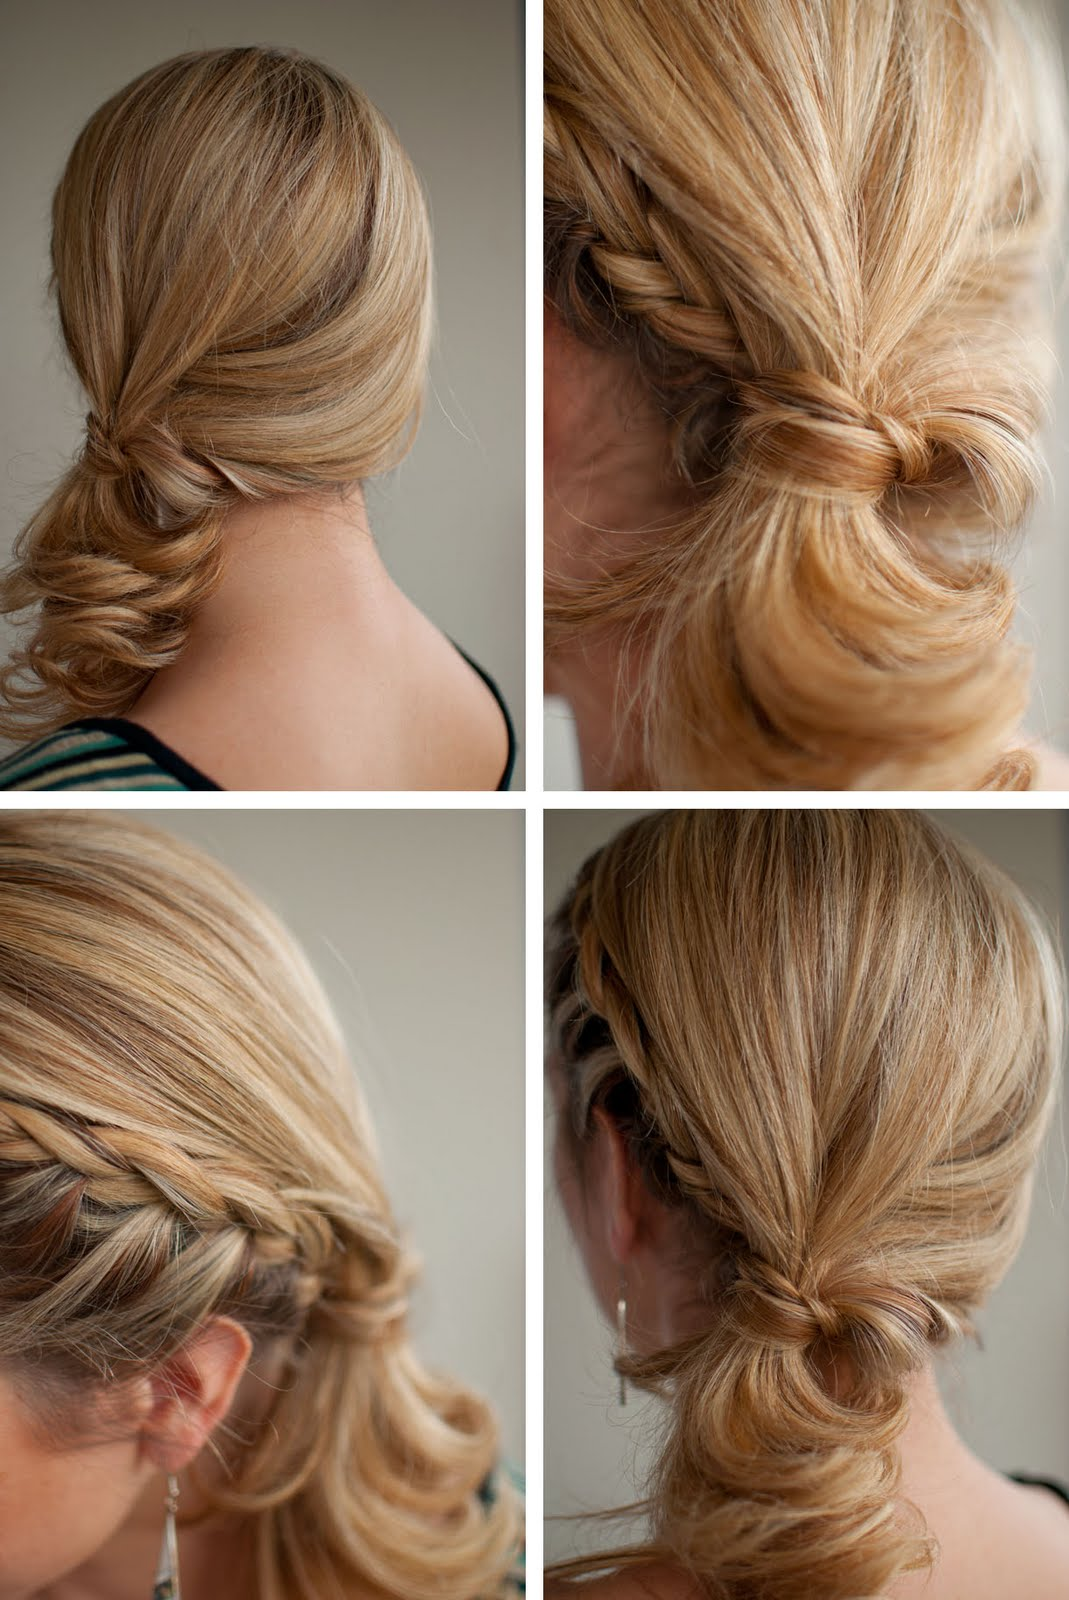 Hairstyles In Ponytails : Latest Ponytail Hairstyles For Prom ~ Prom Hairstyles